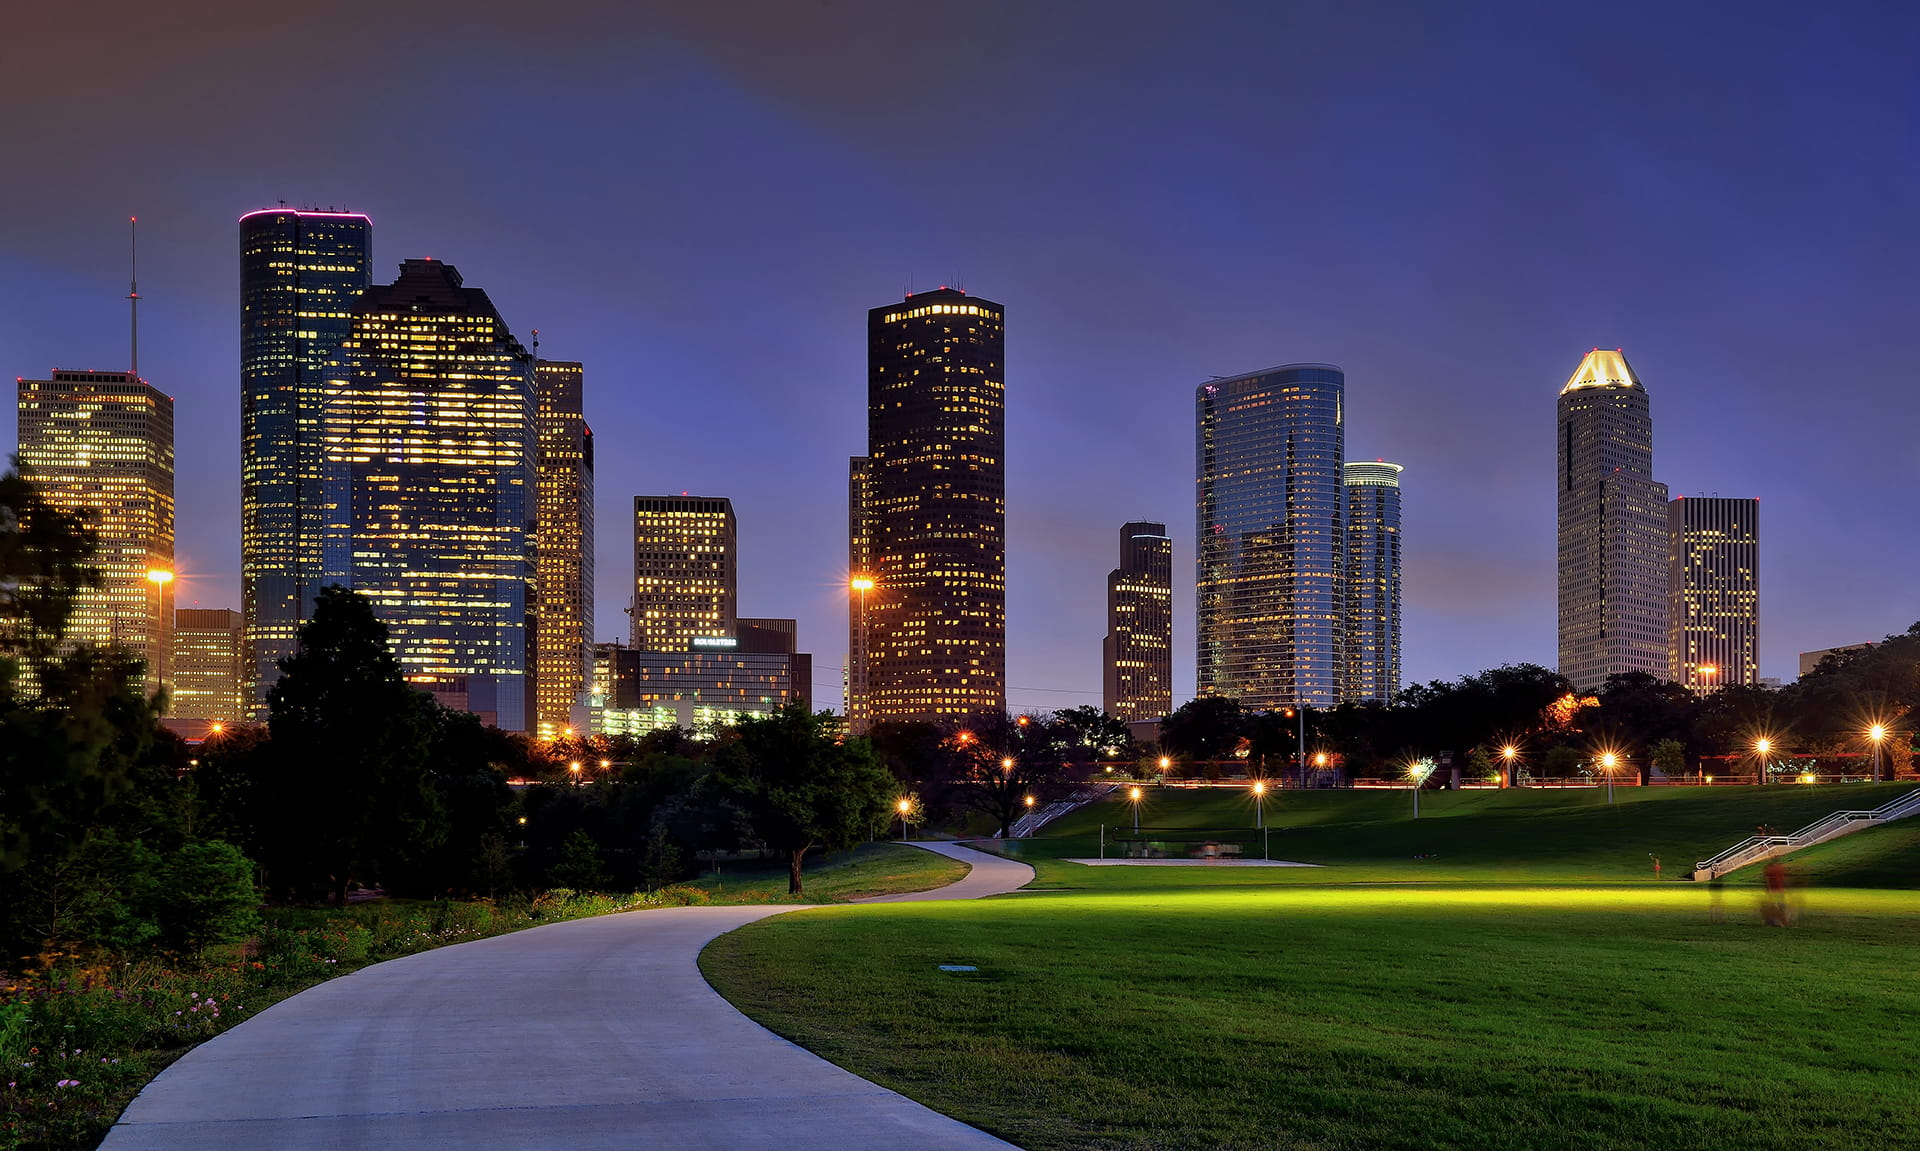 Houston Skyline from Park at Night